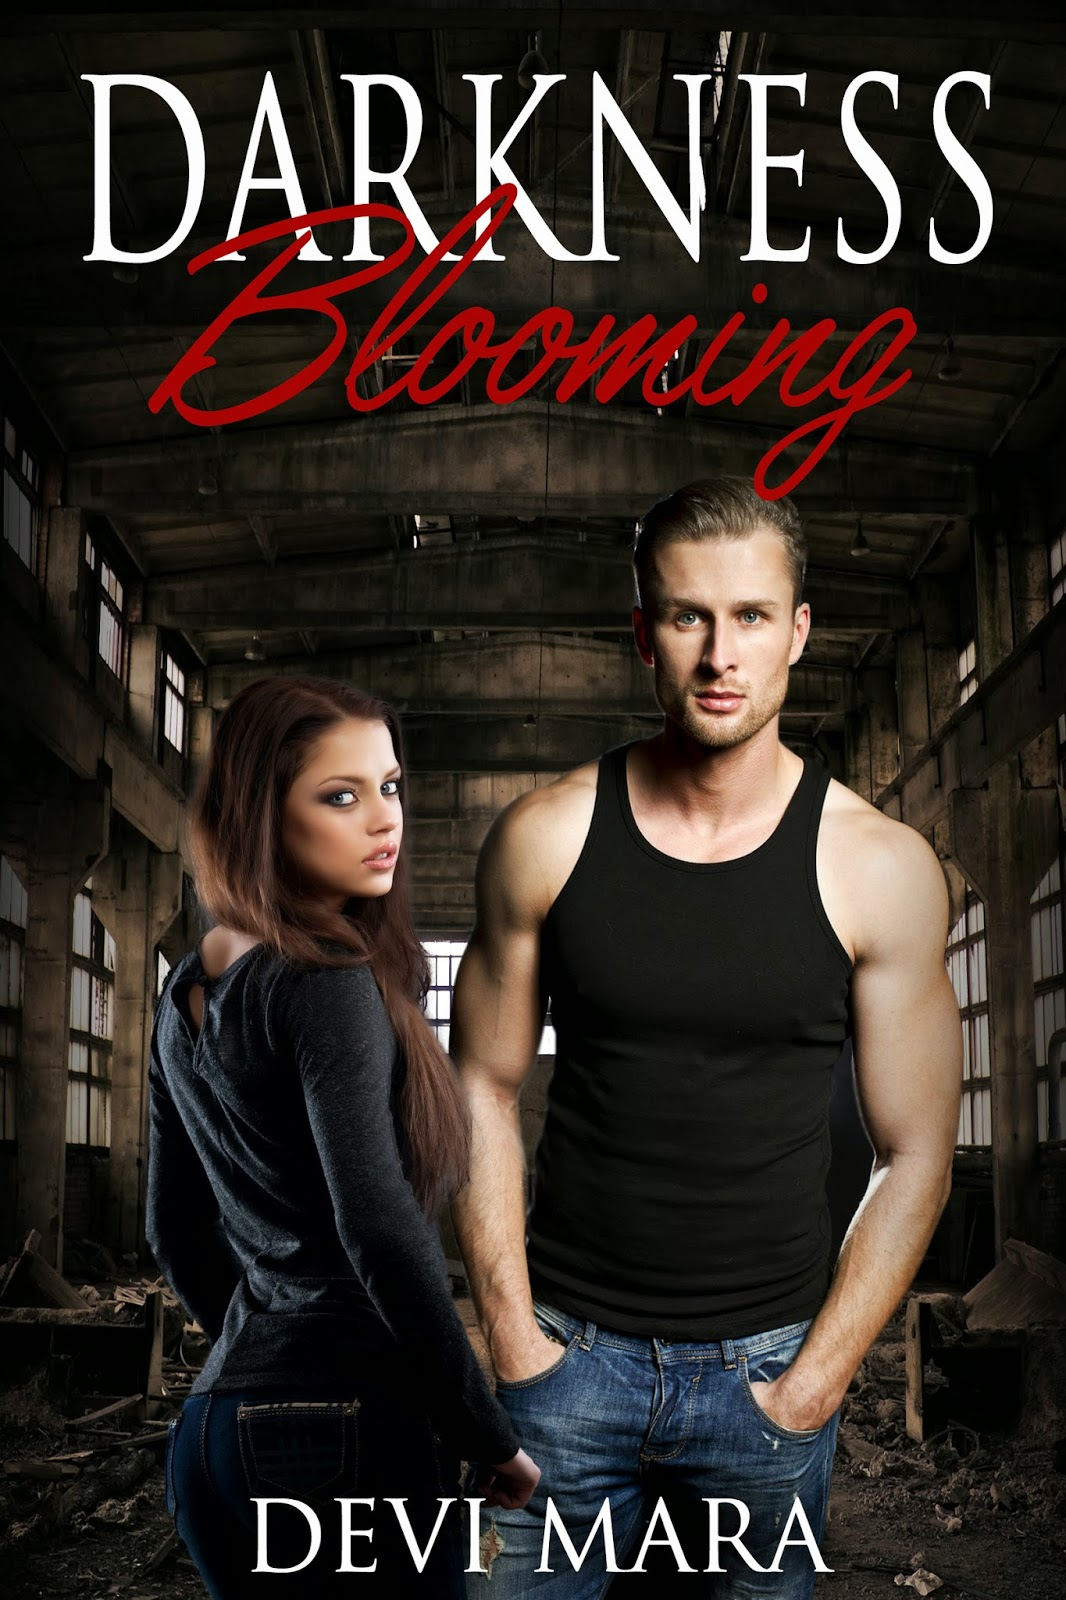 Darkness Blooming by Devi Mara